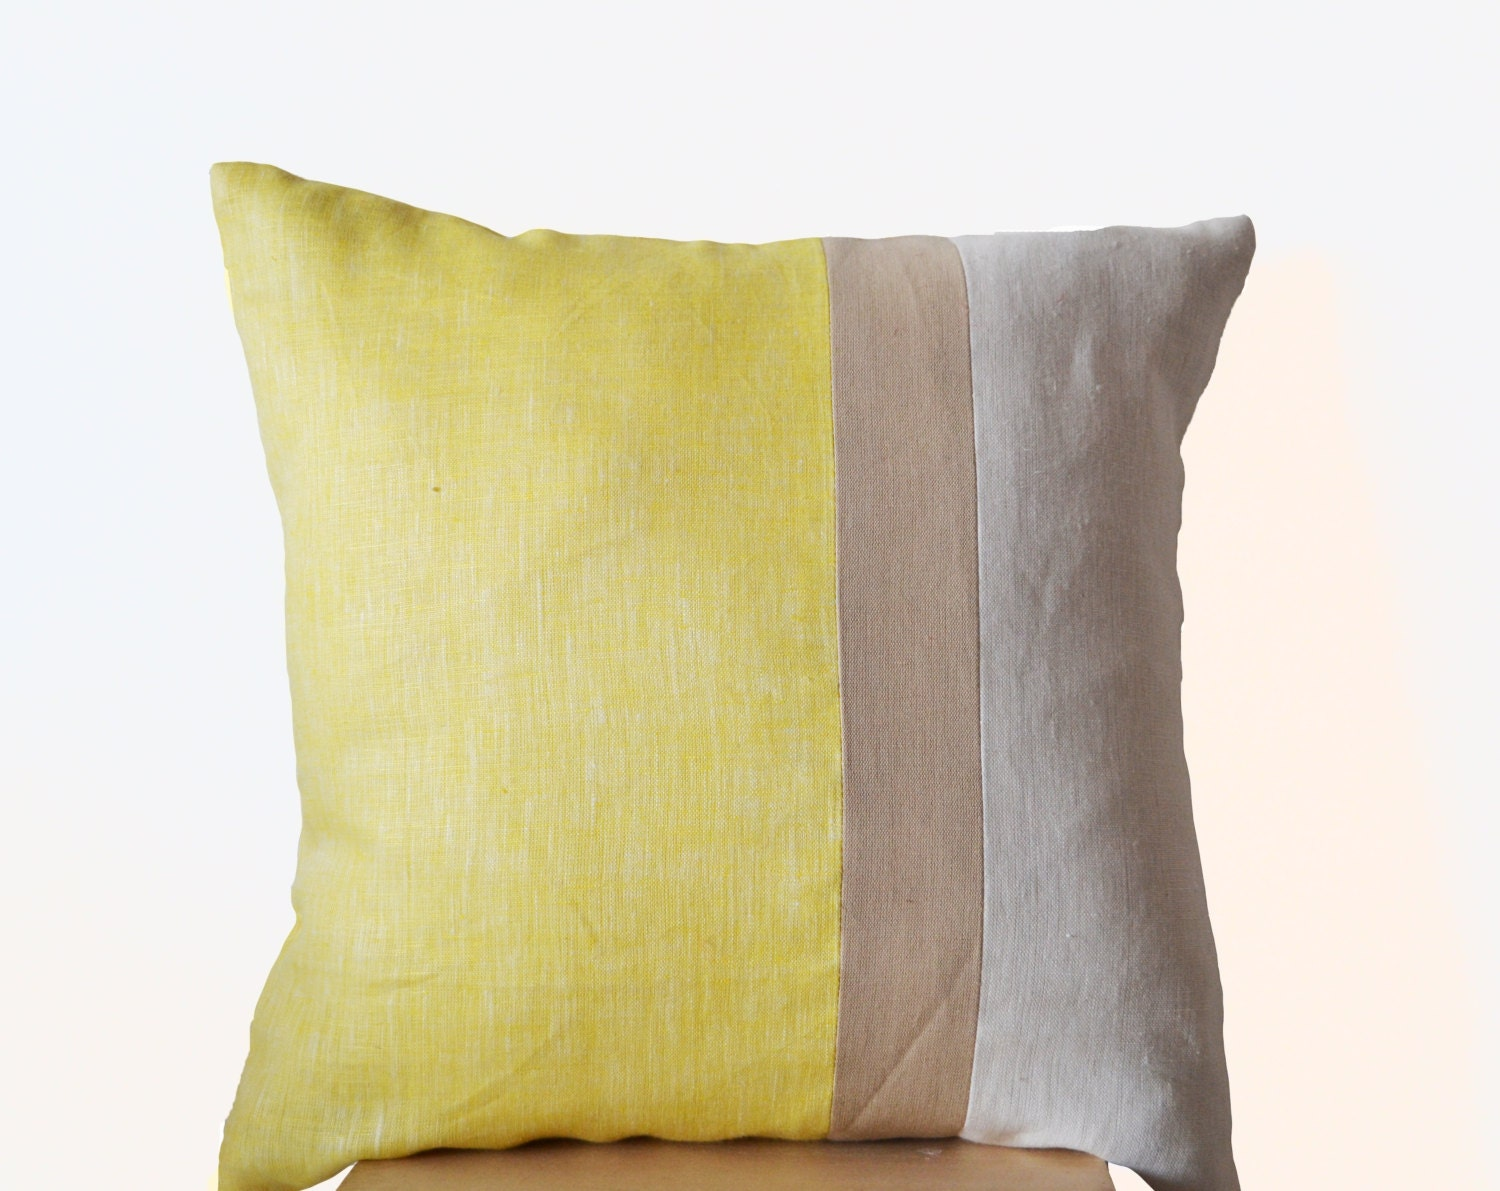 Large Throw Pillows Couch : Yellow Pillow Cover Large Throw Pillows color block Euro